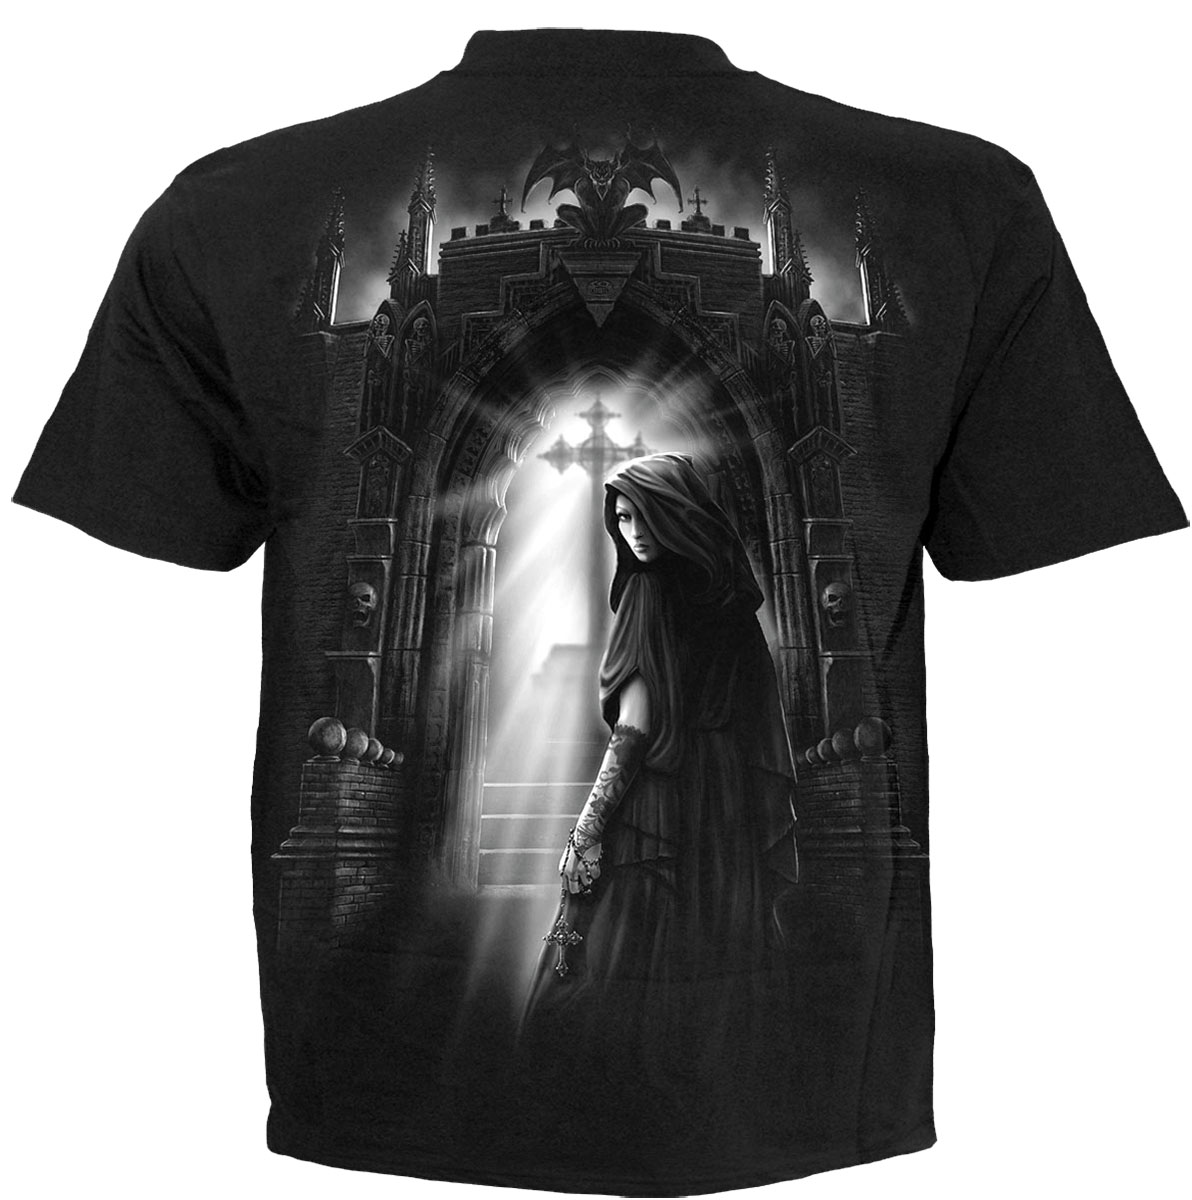 Spiral direct exorcism cool casual mens t shirt black for Cool mens casual shirts